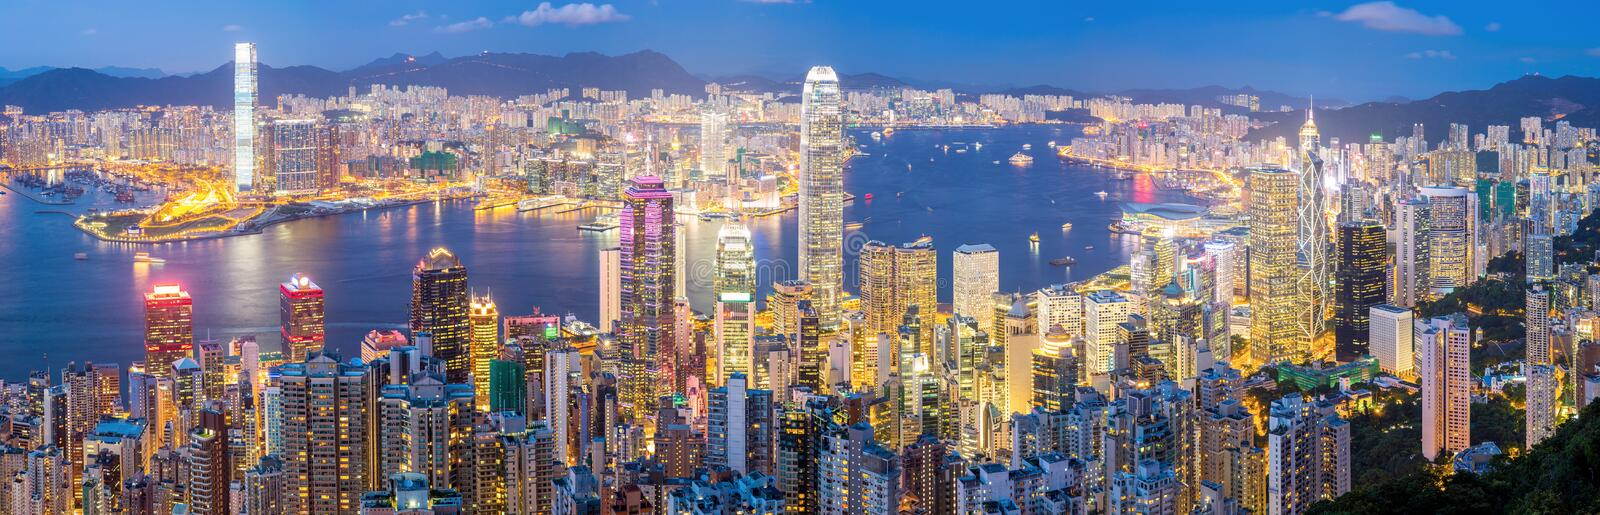 Hong Kong Skyline at Dusk Panorama royalty free stock image